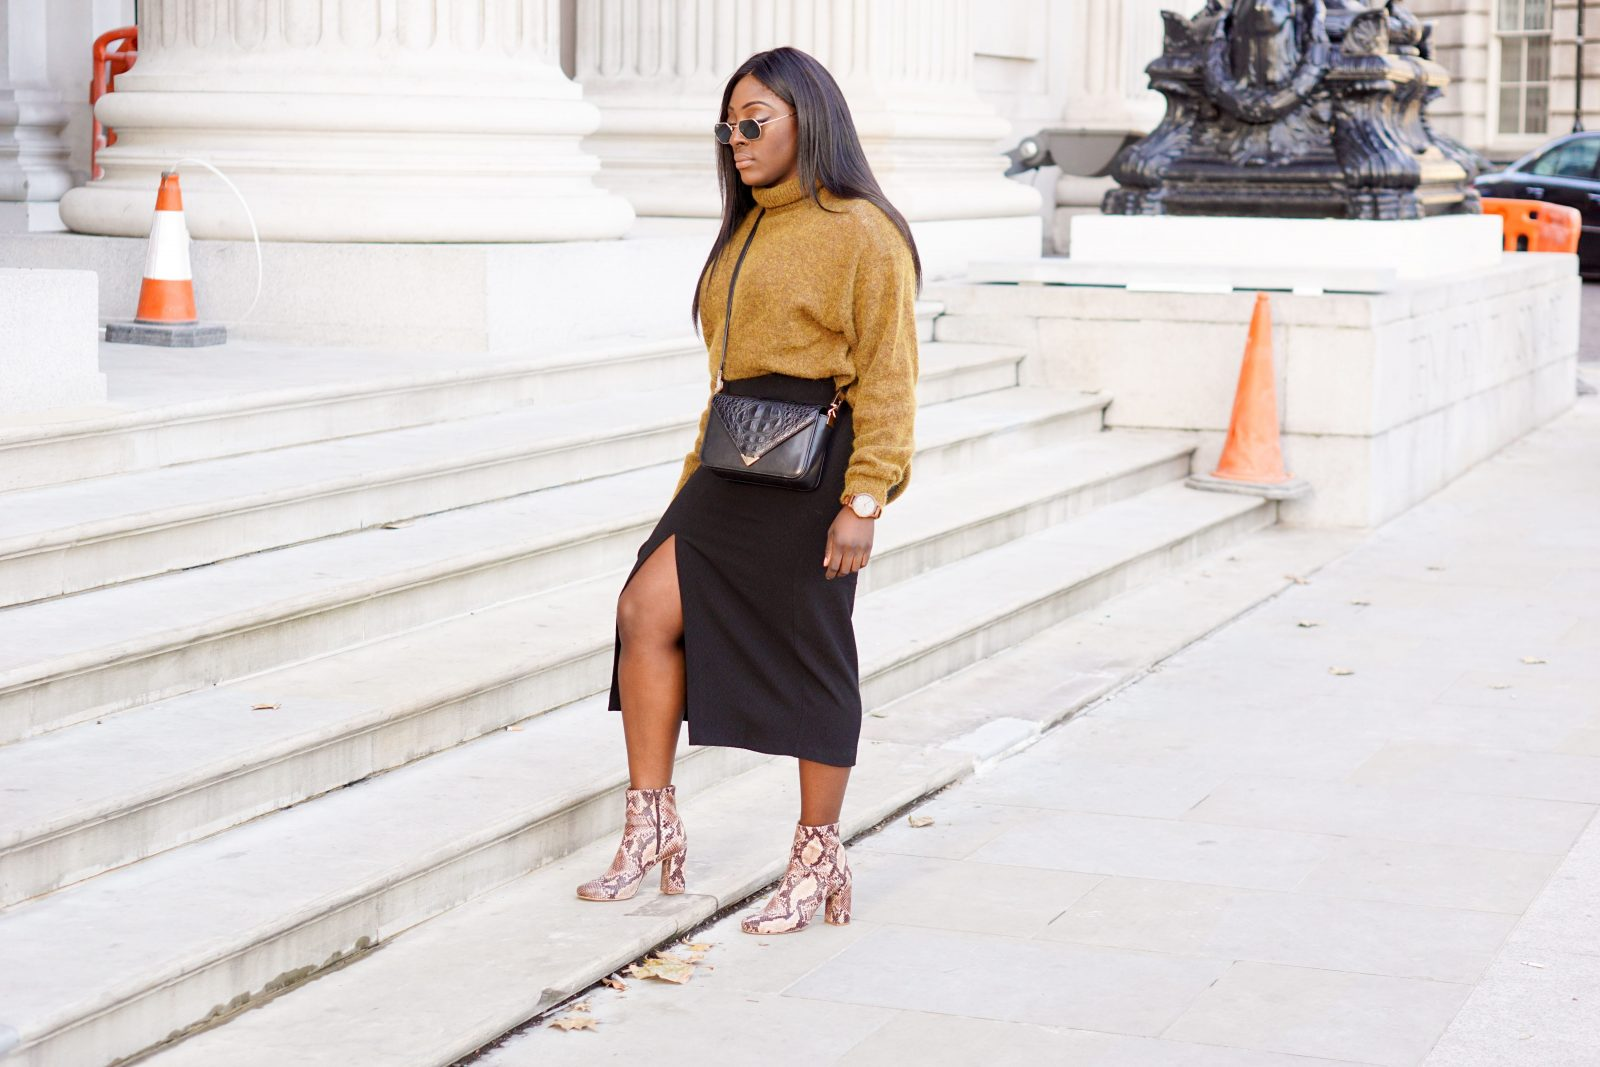 Roll Neck Chic in November 5 - Style and the Sass